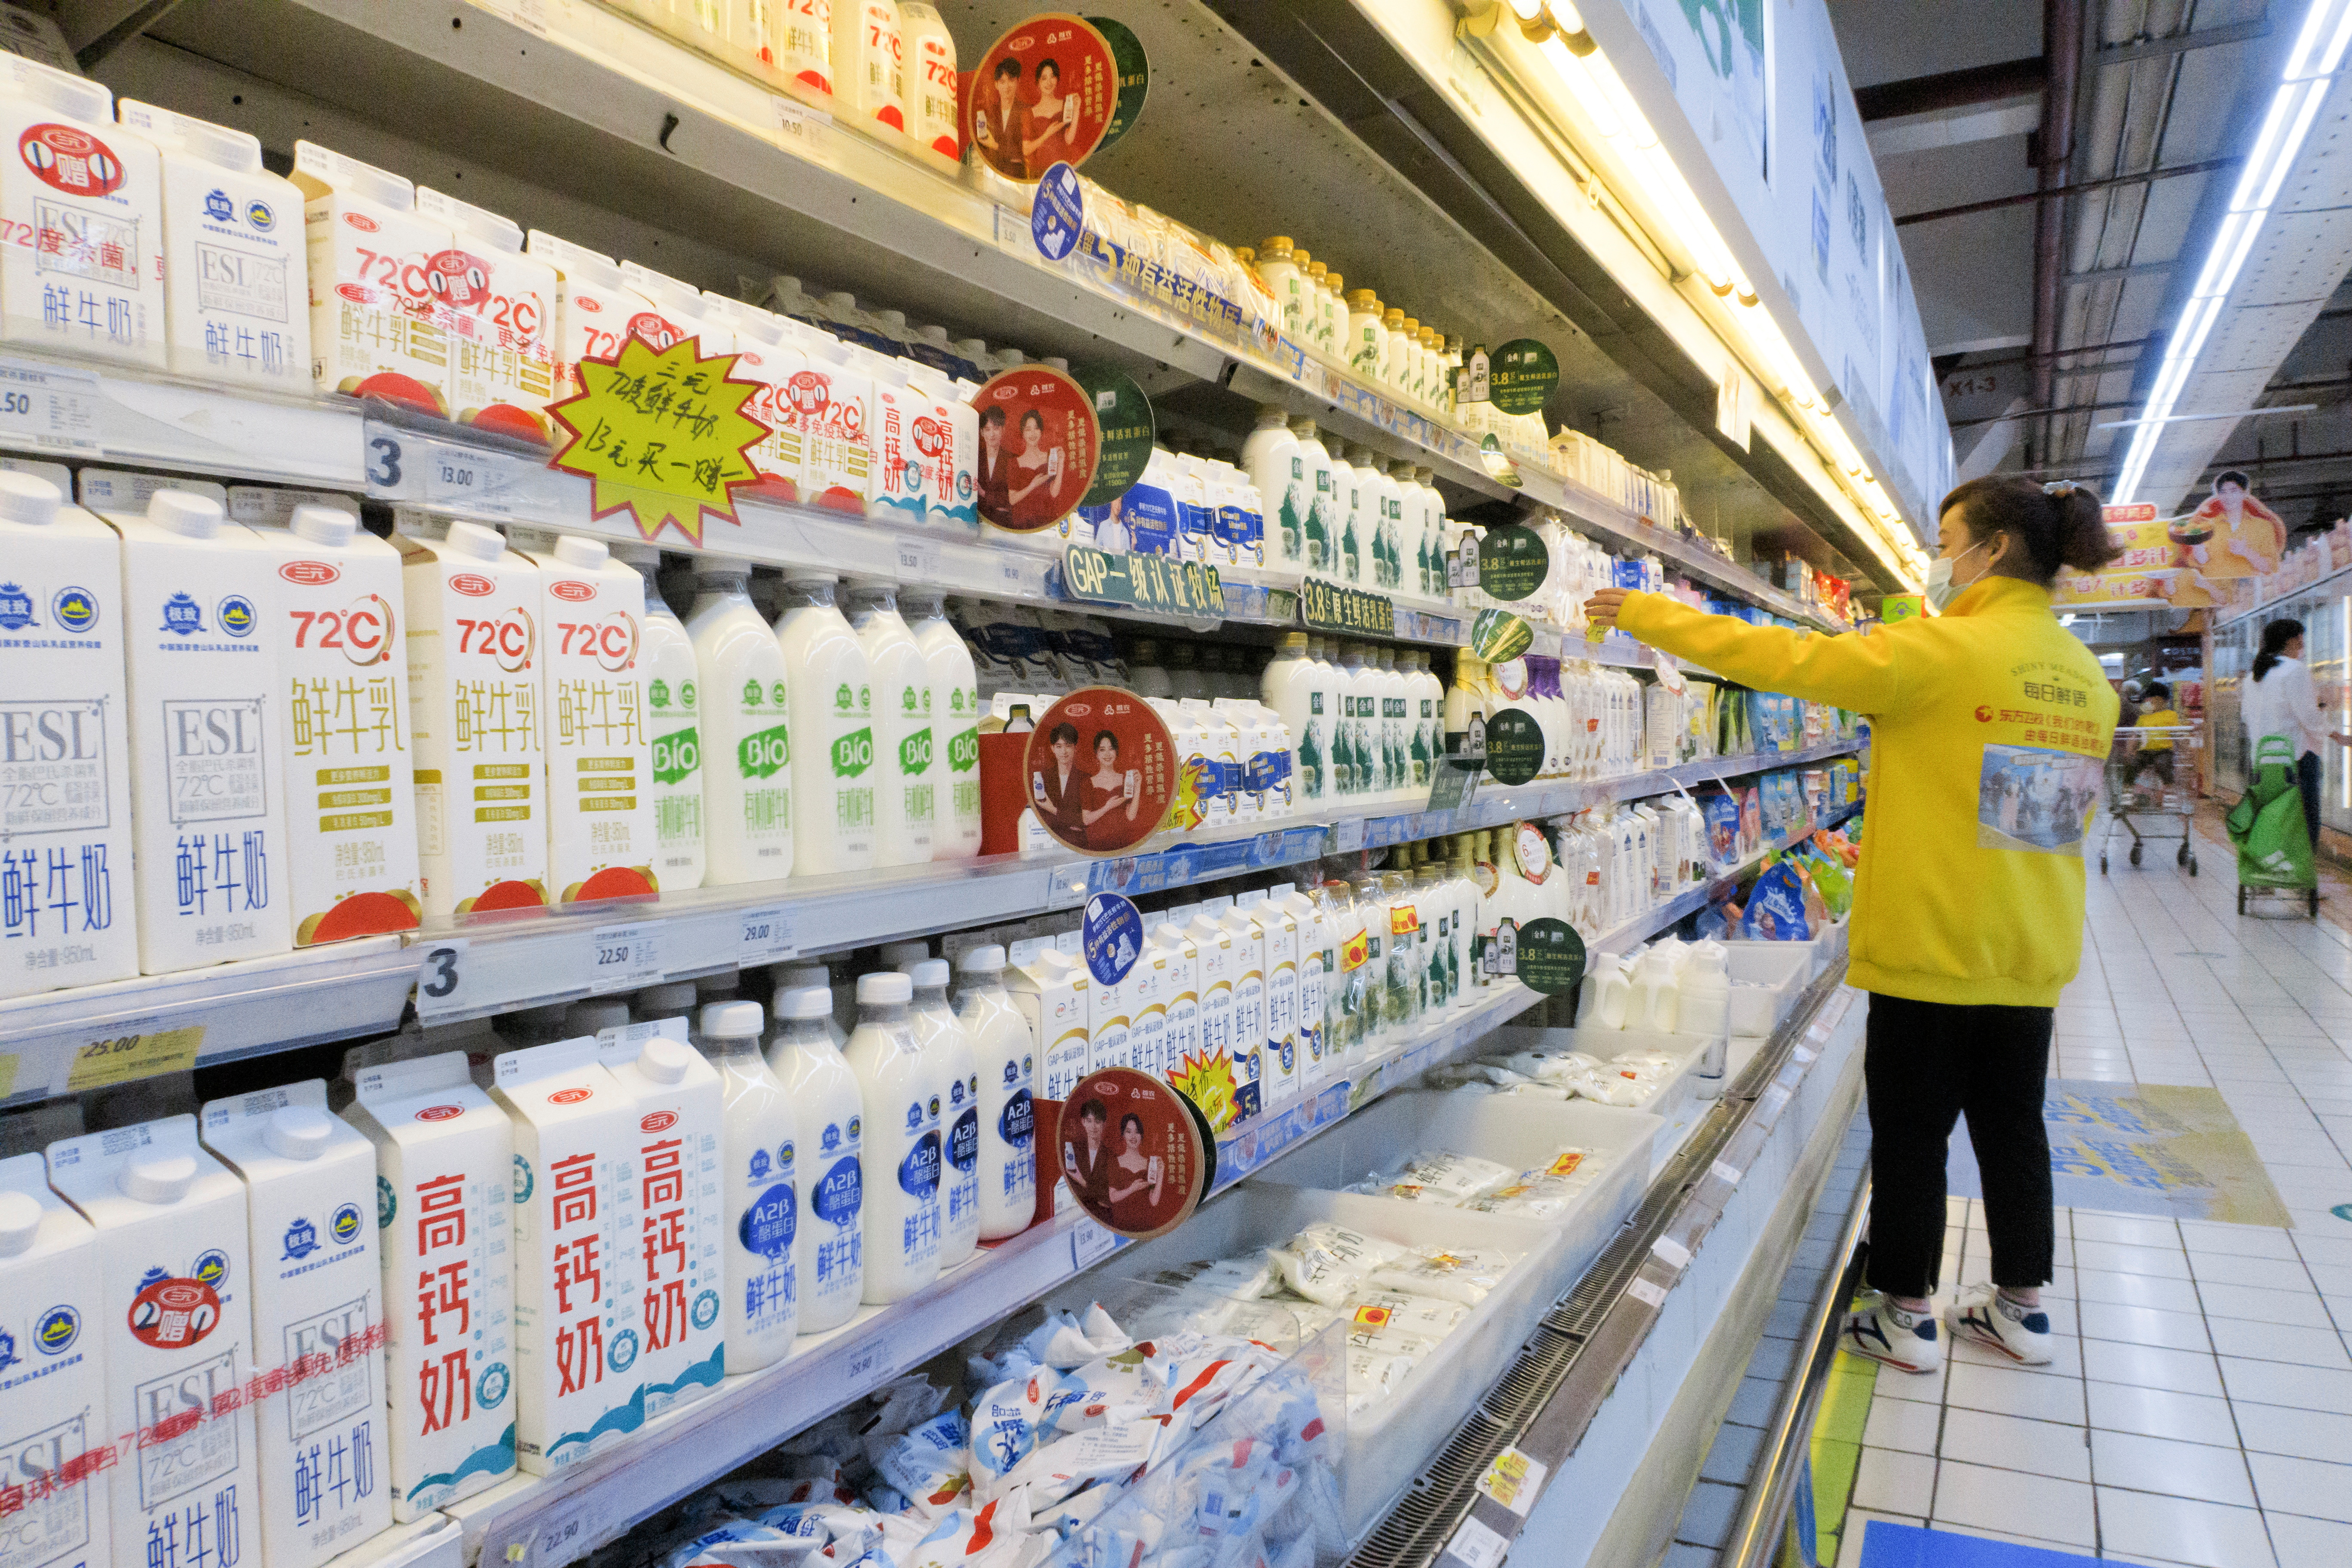 A staff member arranges cartons of milk on refrigerator shelves at a supermarket in Beijing, China, May 21, 2021. REUTERS/Thomas Peter